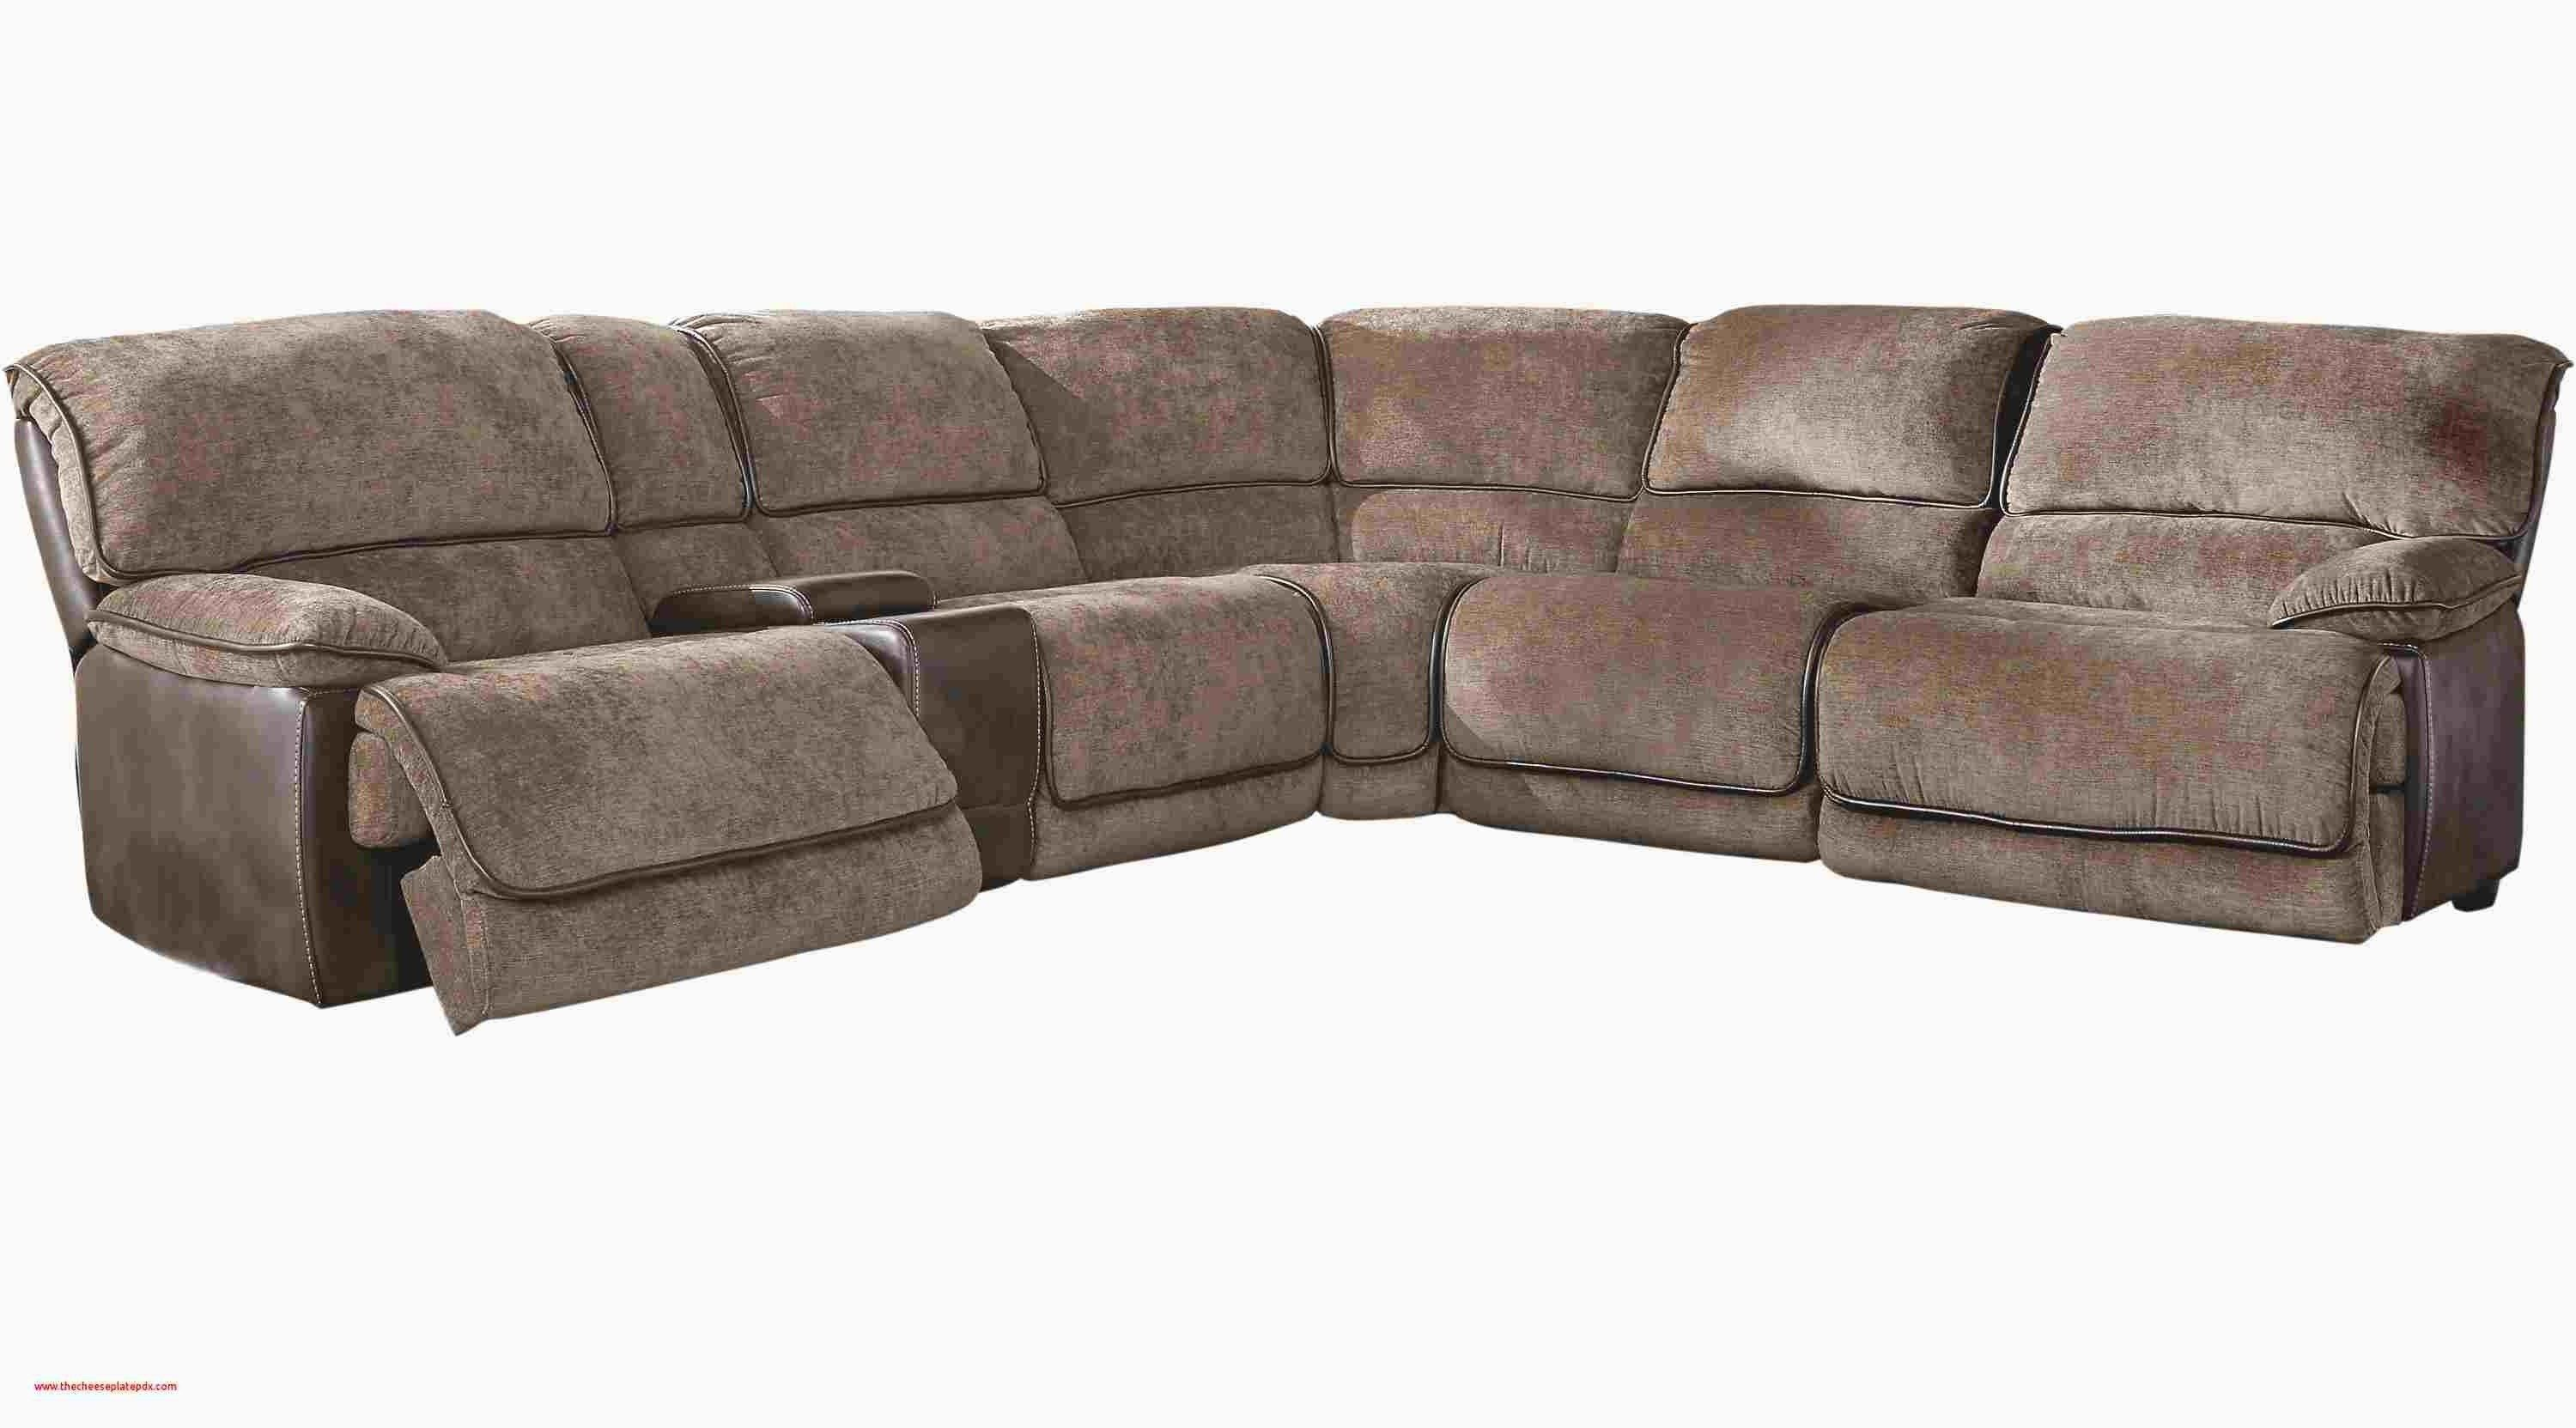 80 Extraordinay Xxl Schlafsofa Sectional Sofa Sale Leather Sofa And Loveseat Power Reclining Sectional Sofa